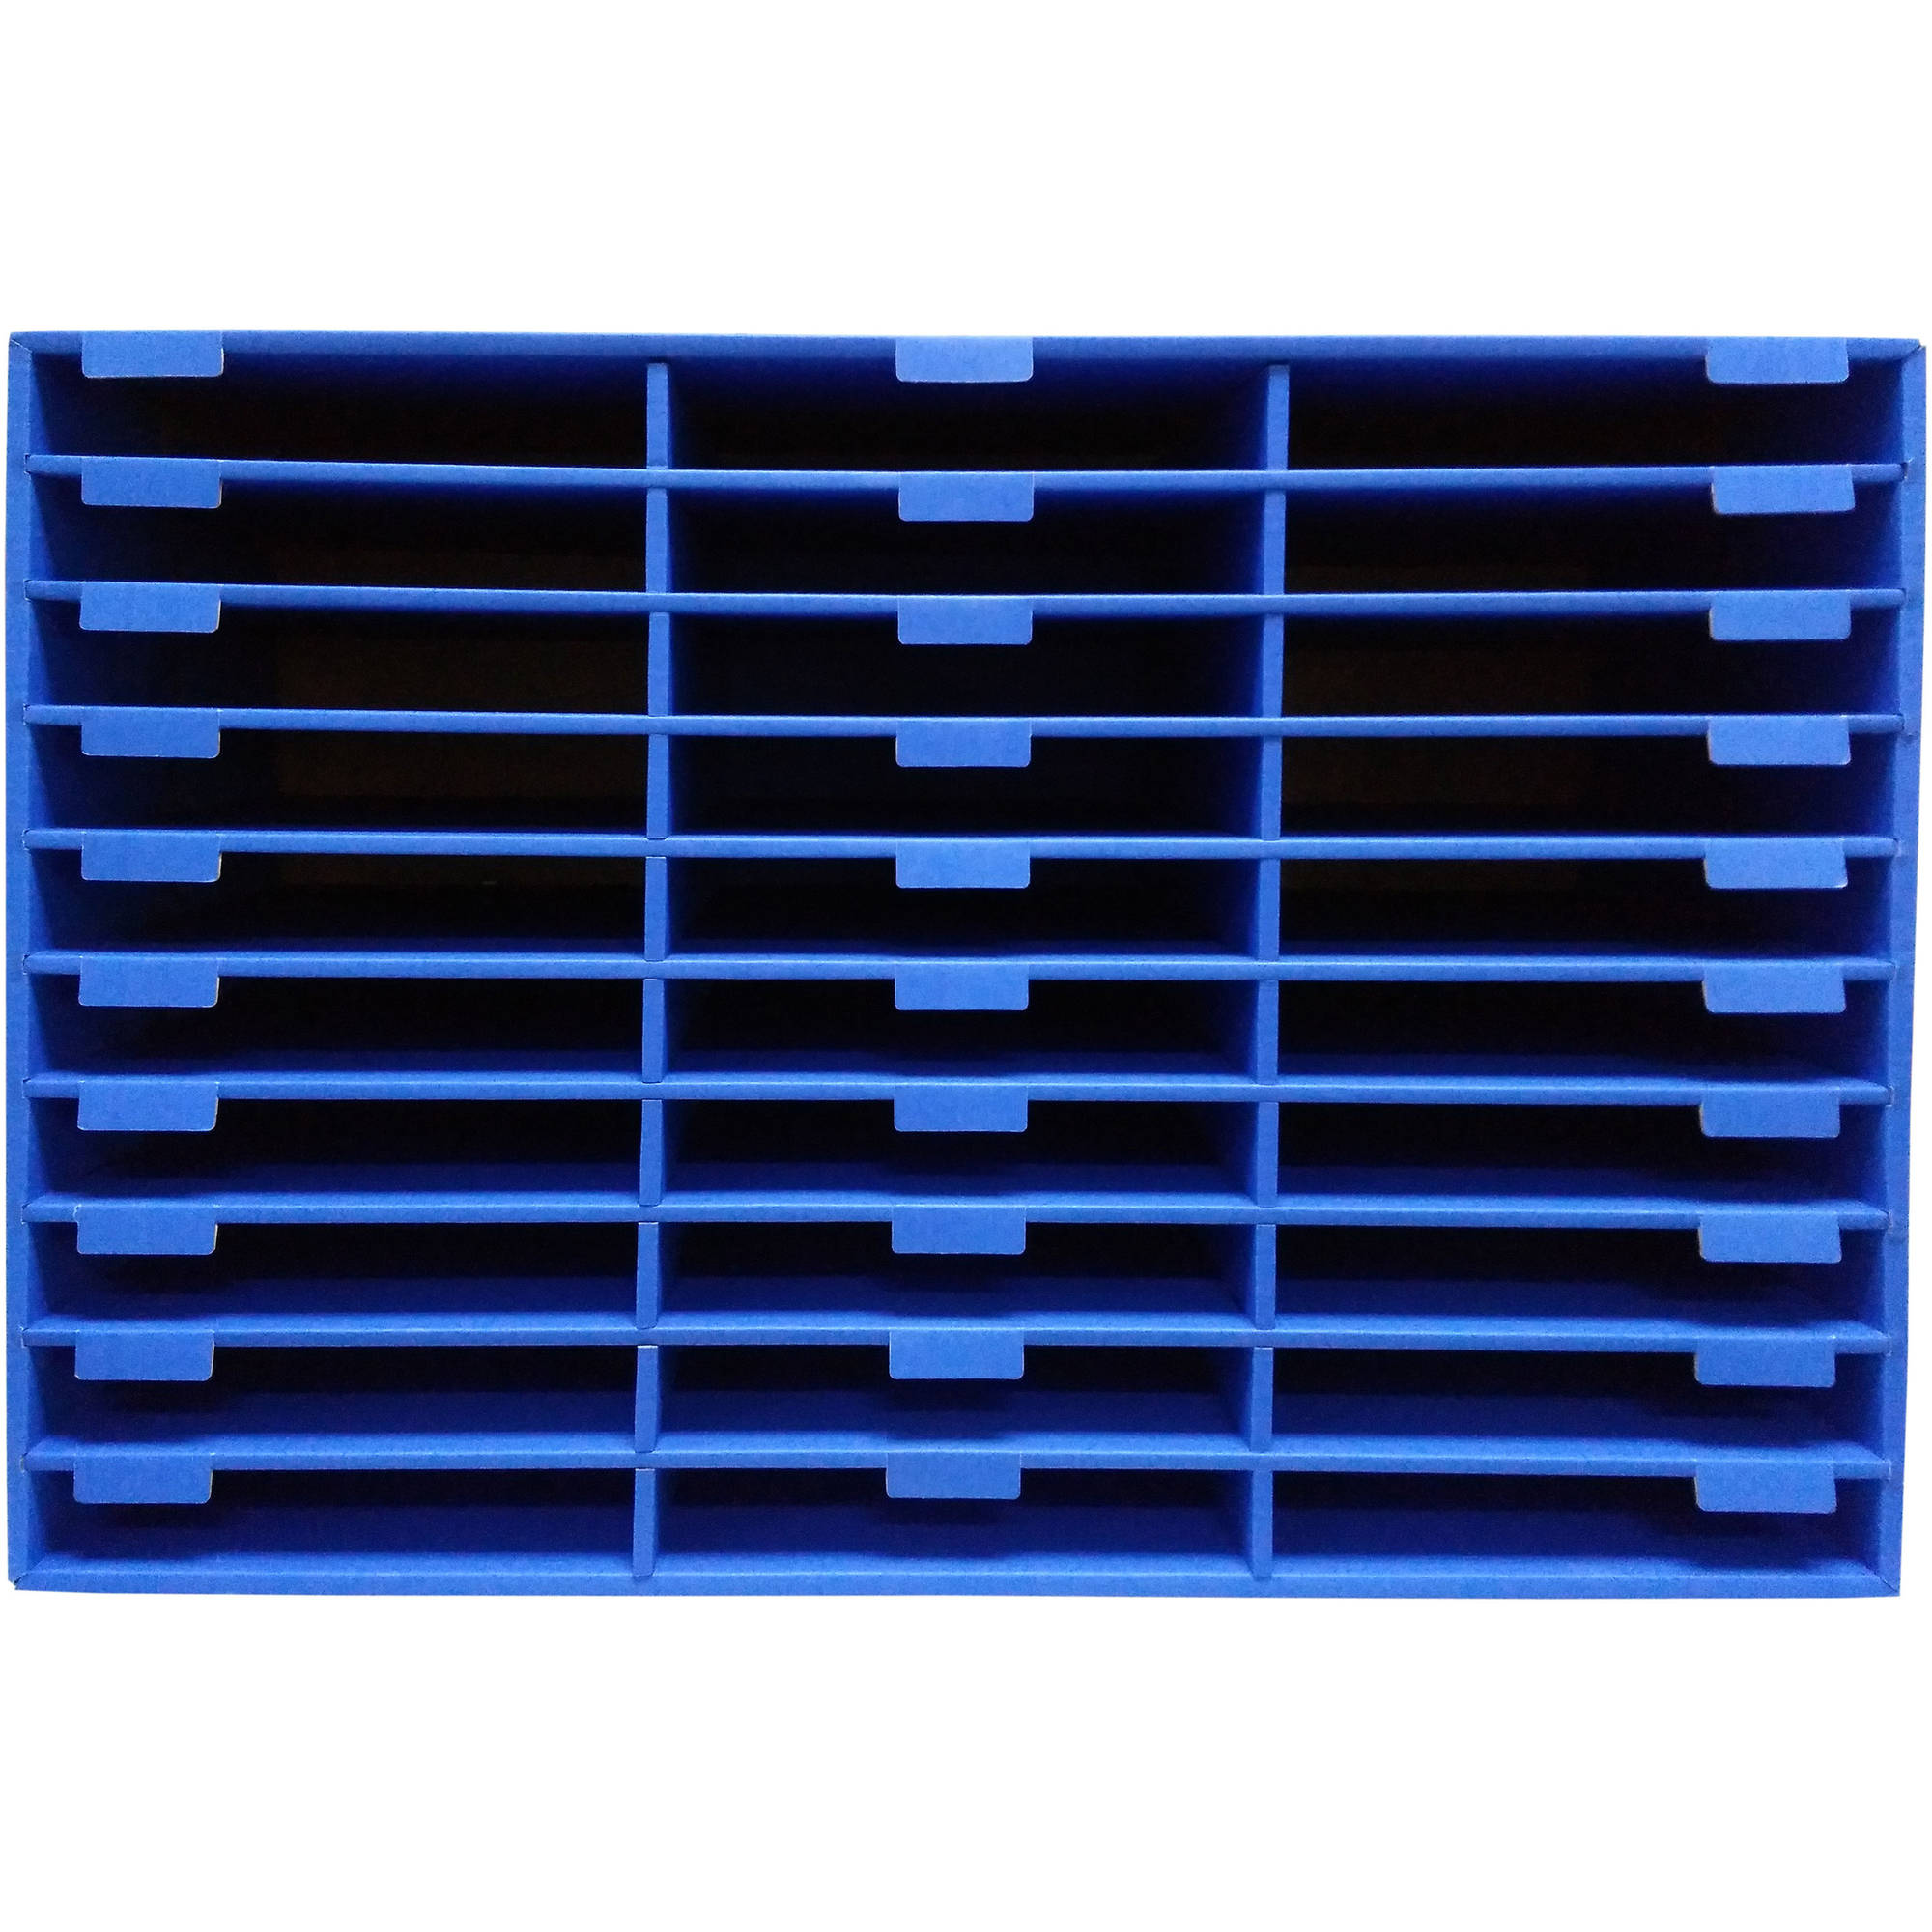 Classroom Organizer with 30 Slots and Name Tabs